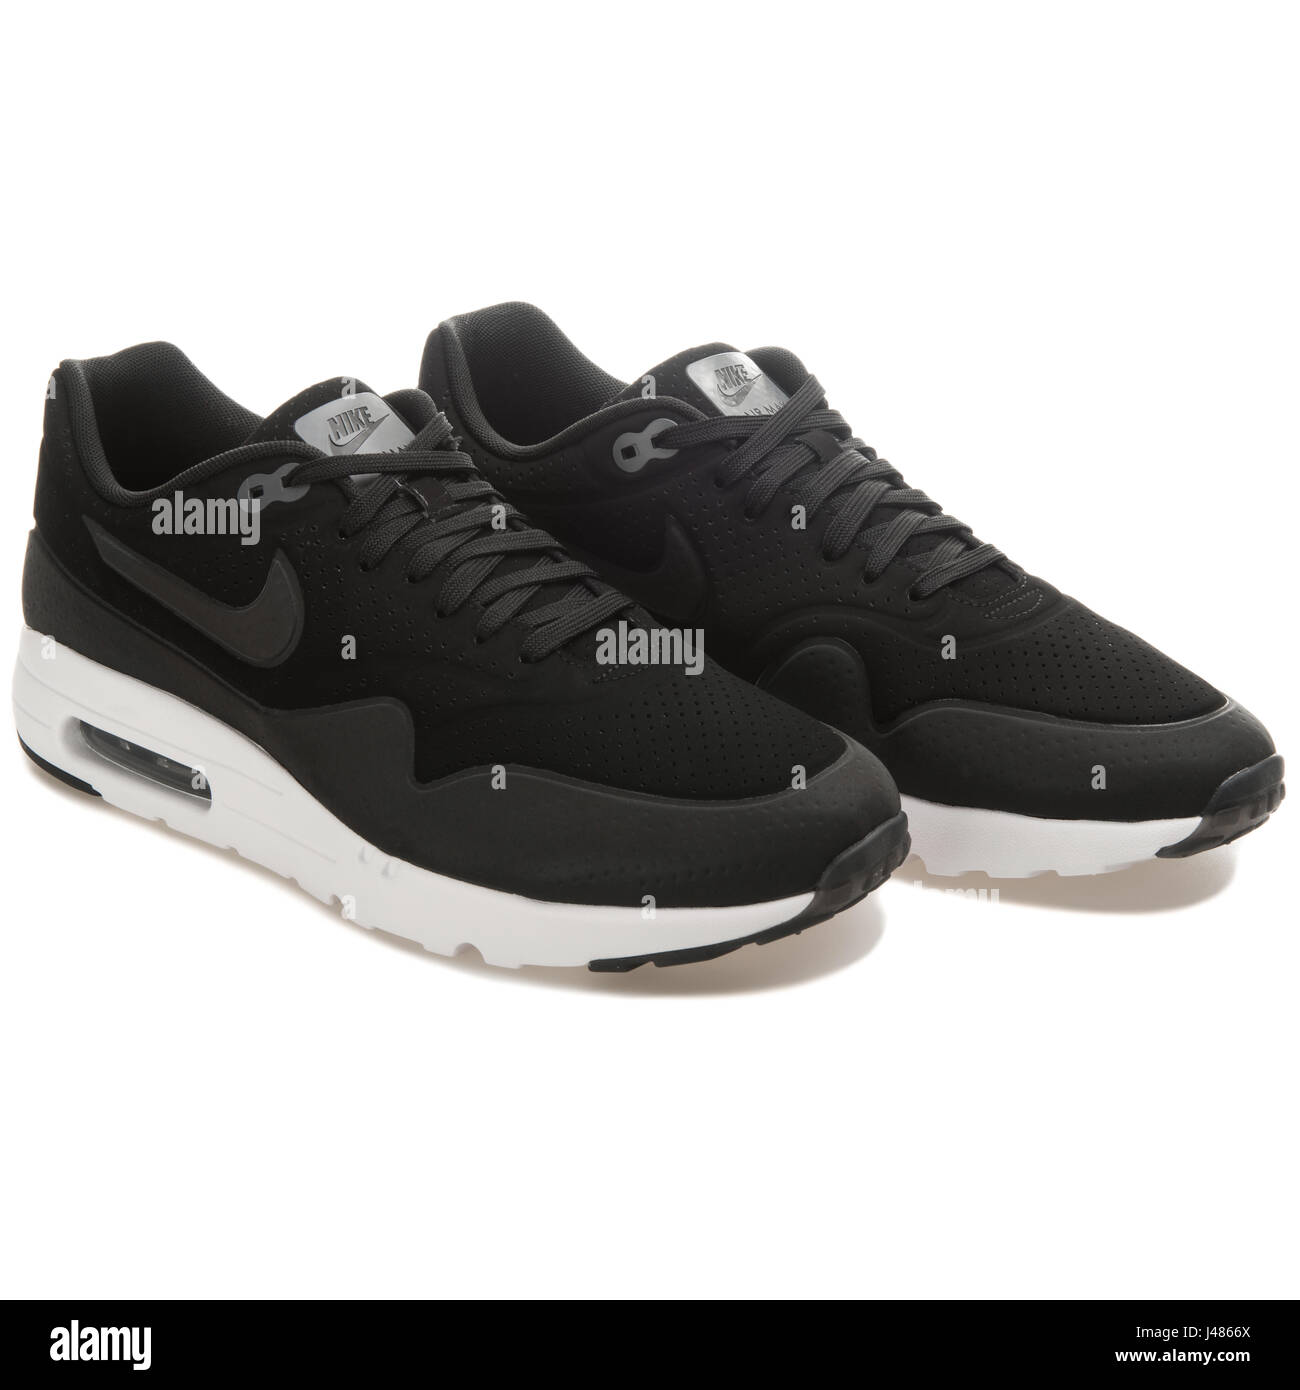 online store 3f753 7985d Nike Air Max 1 Ultra Moire - 705297-010 - Stock Image